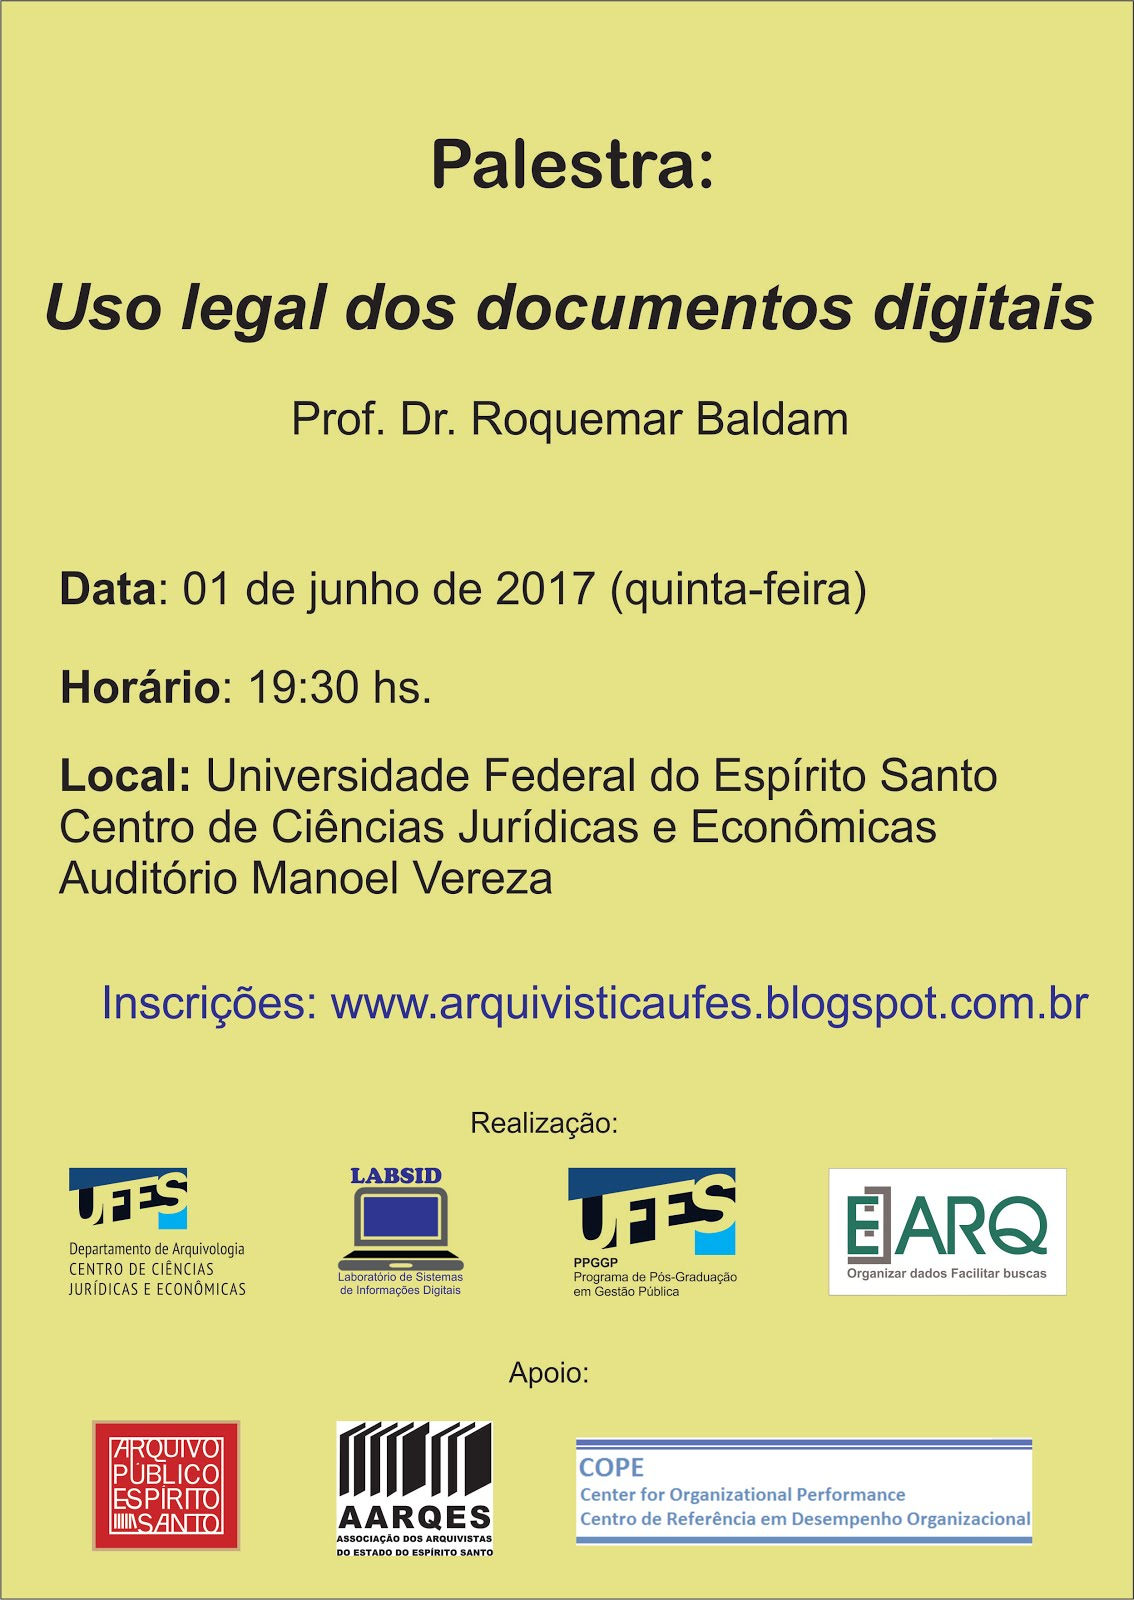 Palestra O uso legal dos documentos digitais